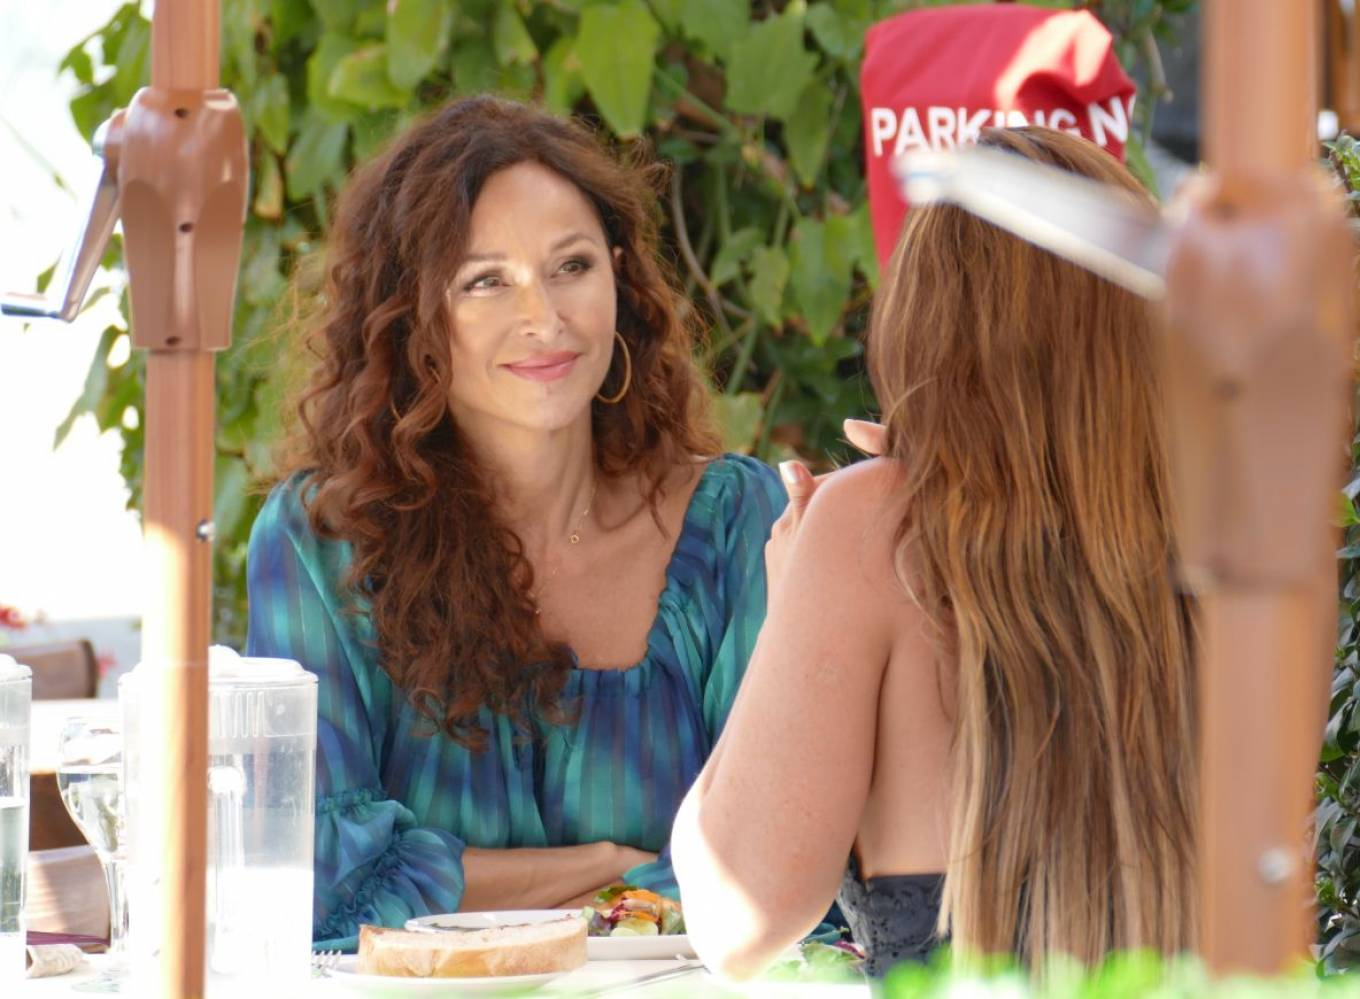 Sofia Milos 2020 : Sofia Milos – Seen at a Lunch With Female Friend-04